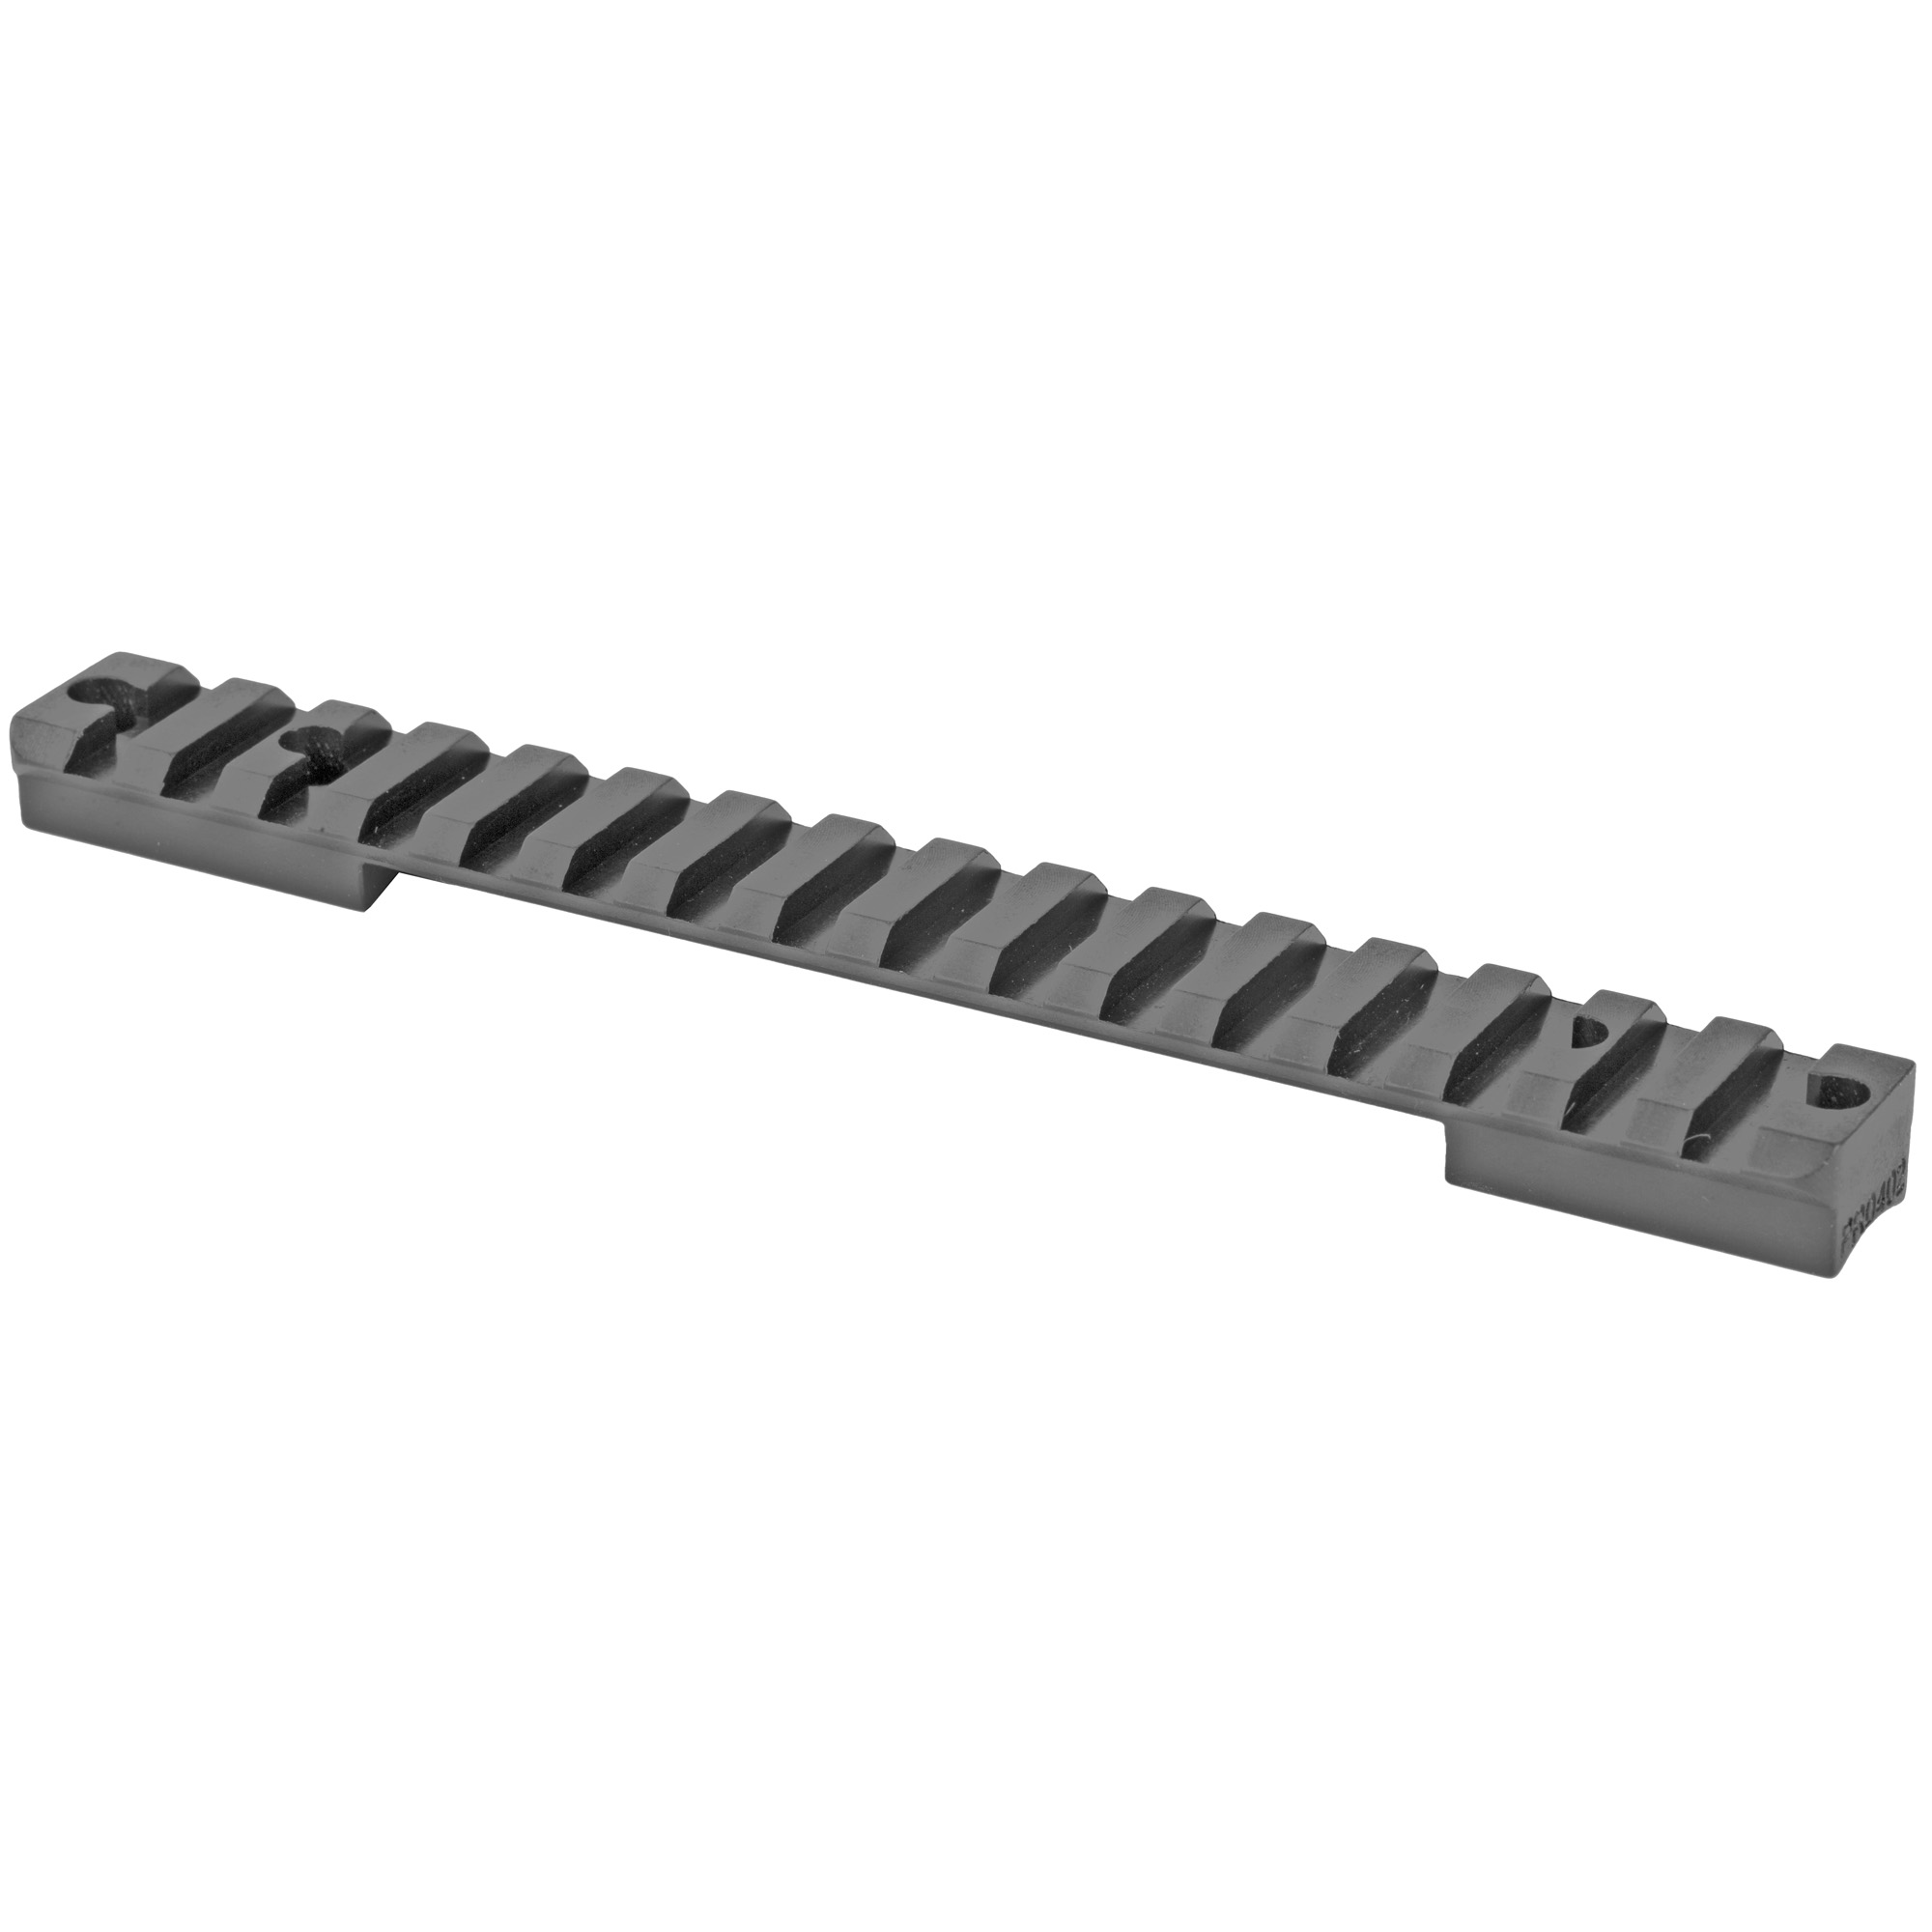 DNZ Savage Long Action Round Receiver Freedom Reaper - Black-img-1